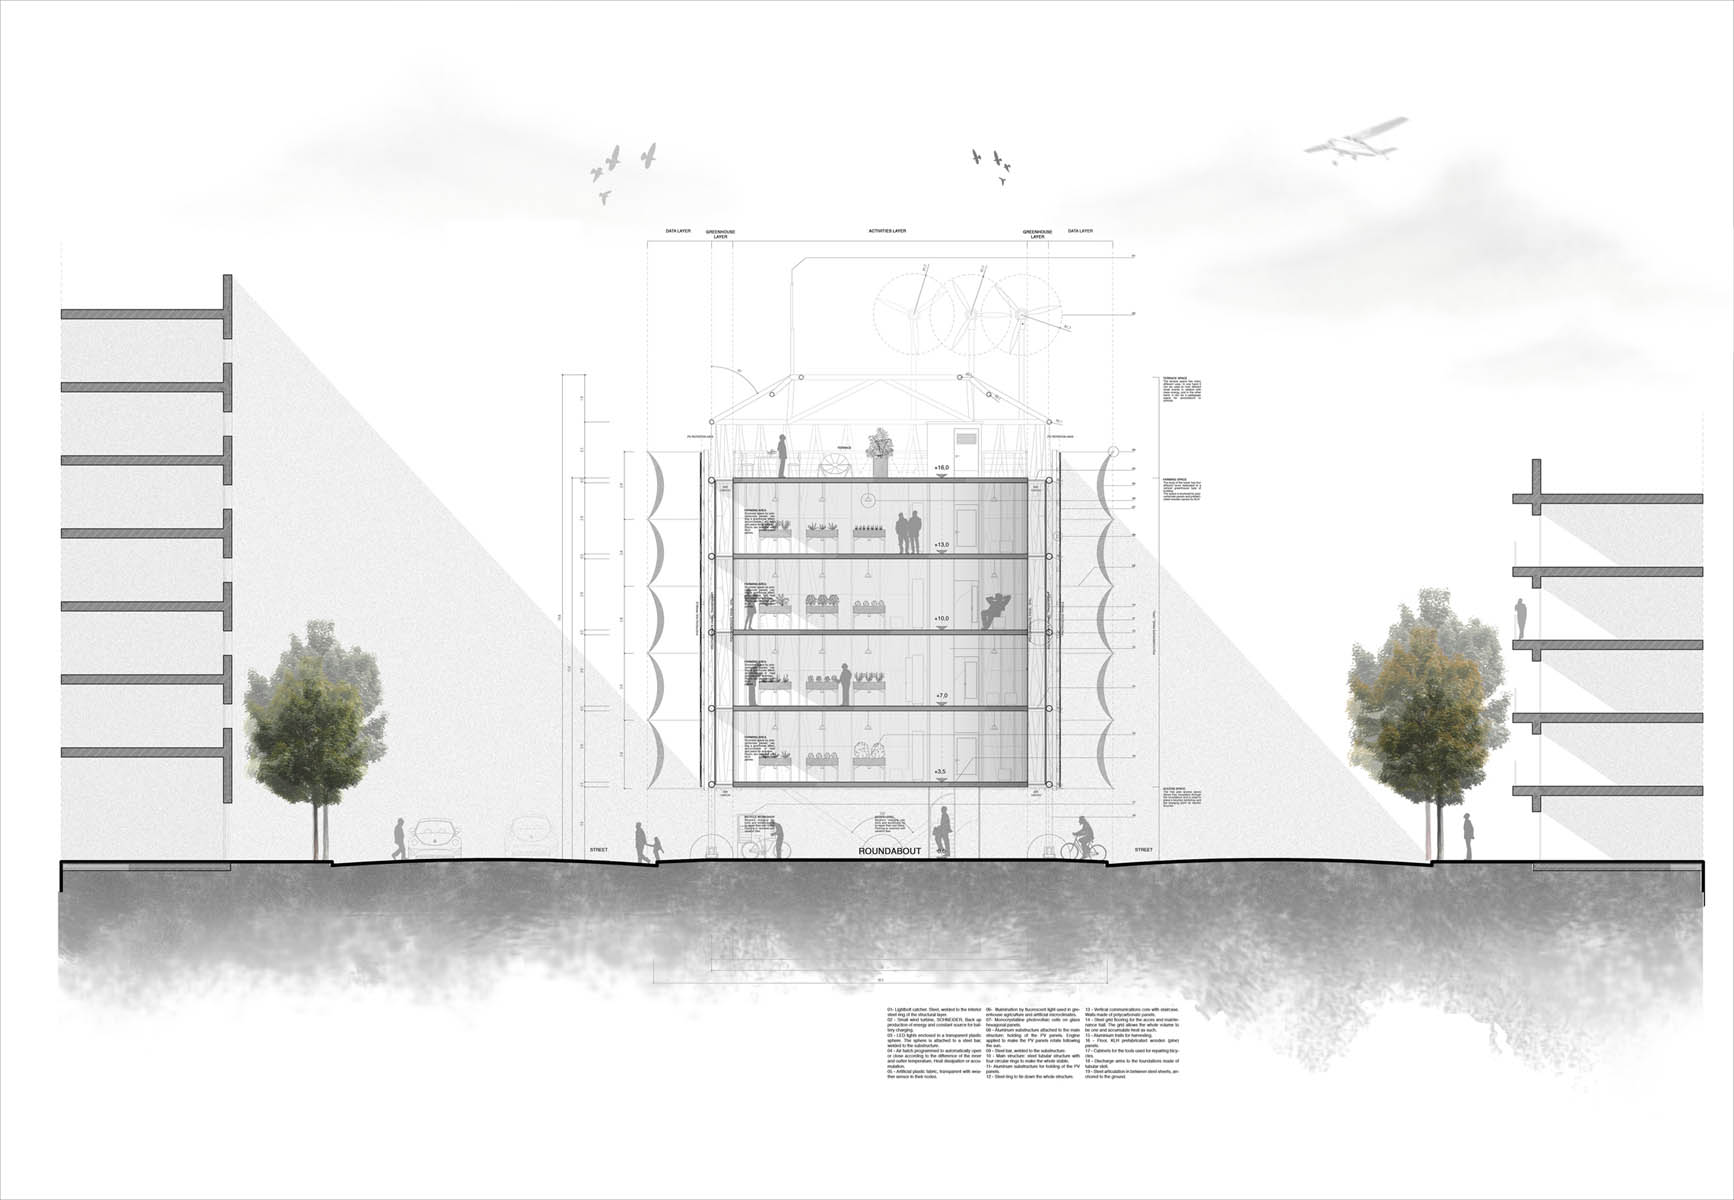 05_TOWER_SECTION_02